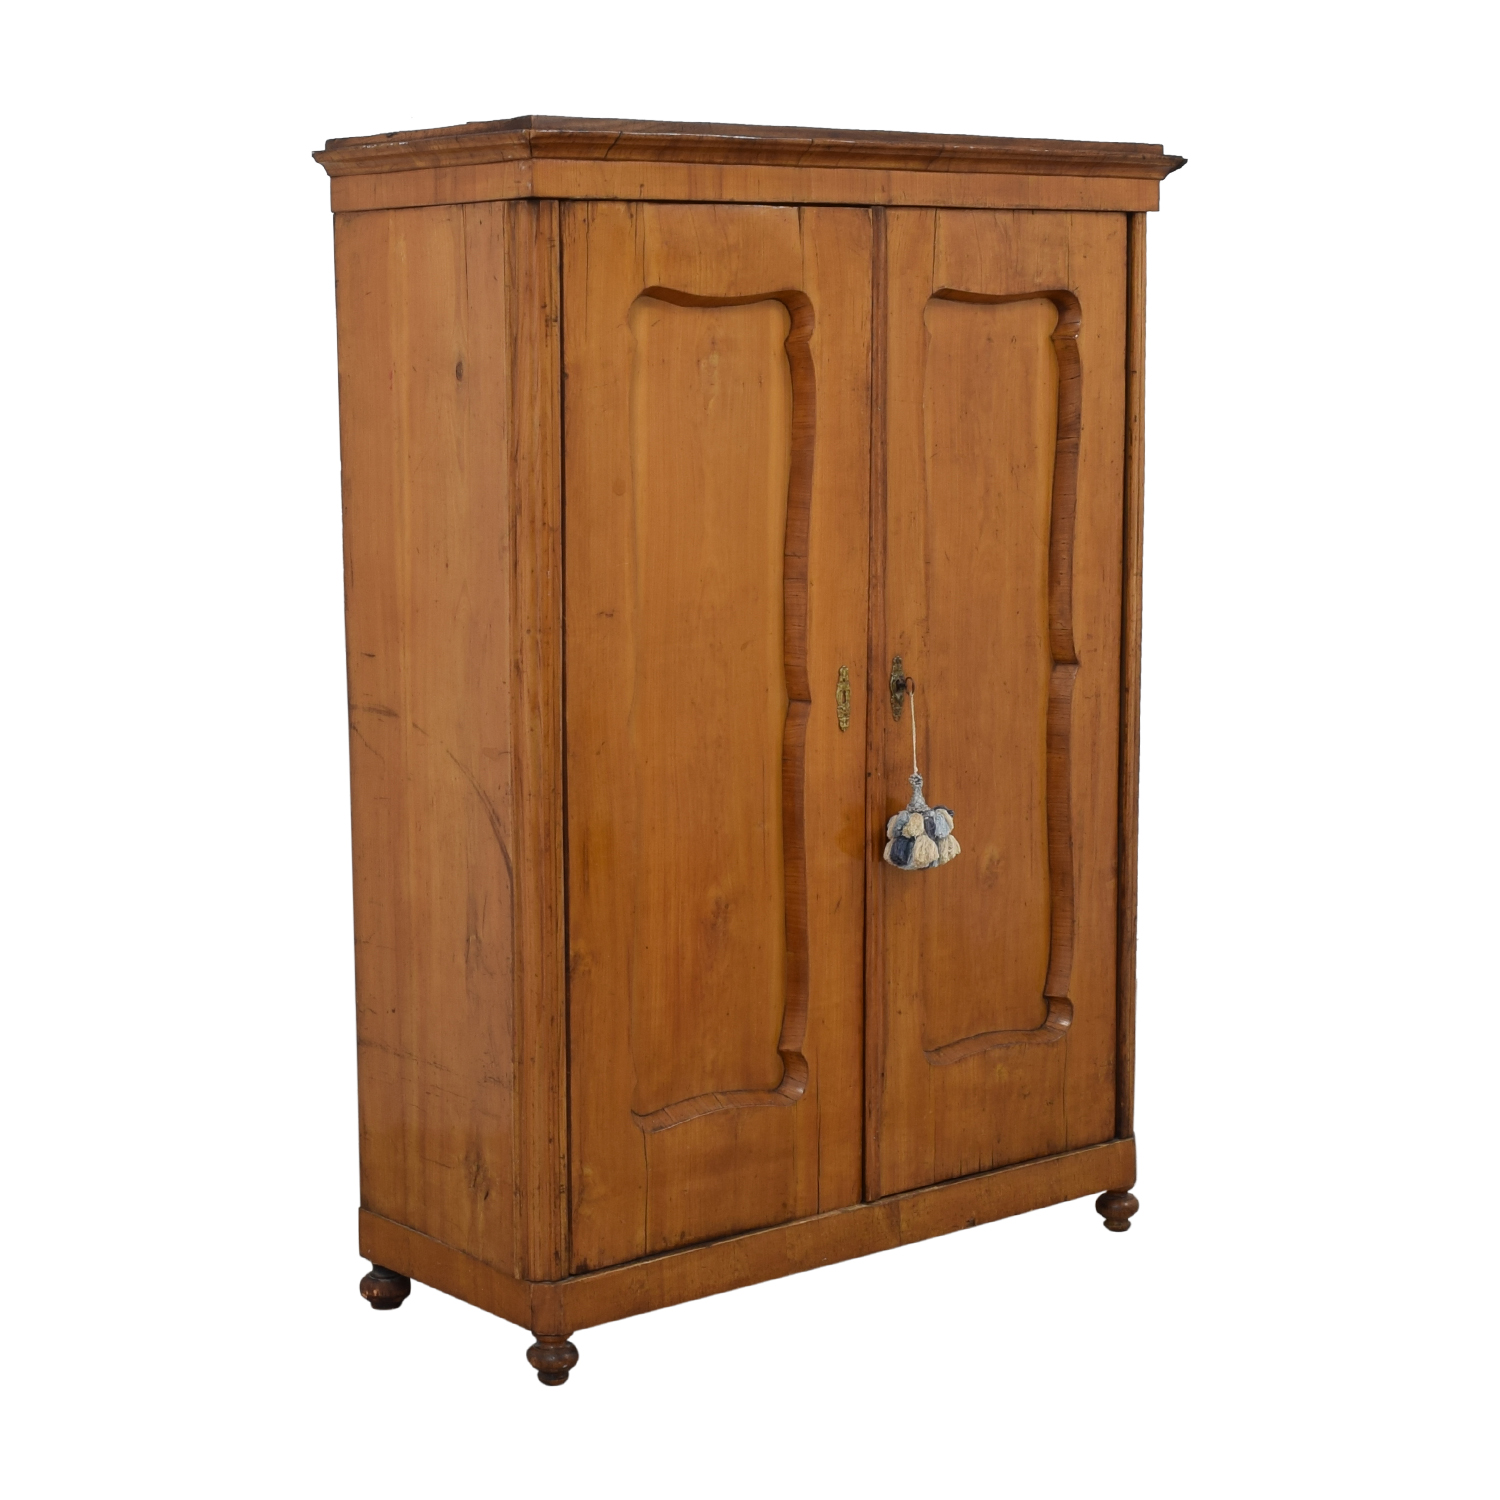 Wood Wardrobe Armoire with Shelves nyc